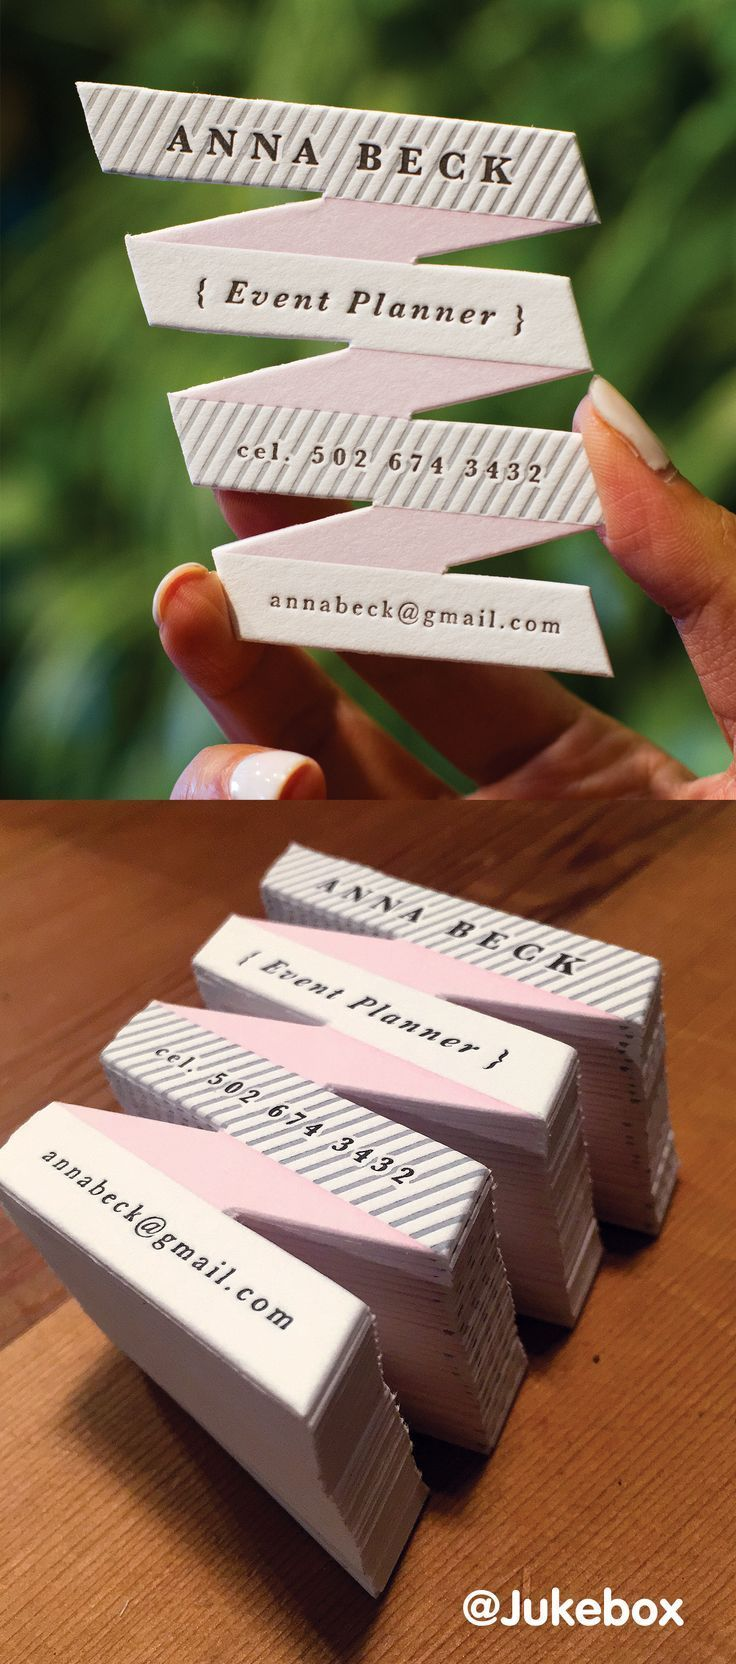 "Want to learn how to create amazing business cards? Download for FREE ""The Complete Guide to Business Cards"" today at www.allbcards.com. Limited time offer!! ---> Repinned by www.gers.nl"